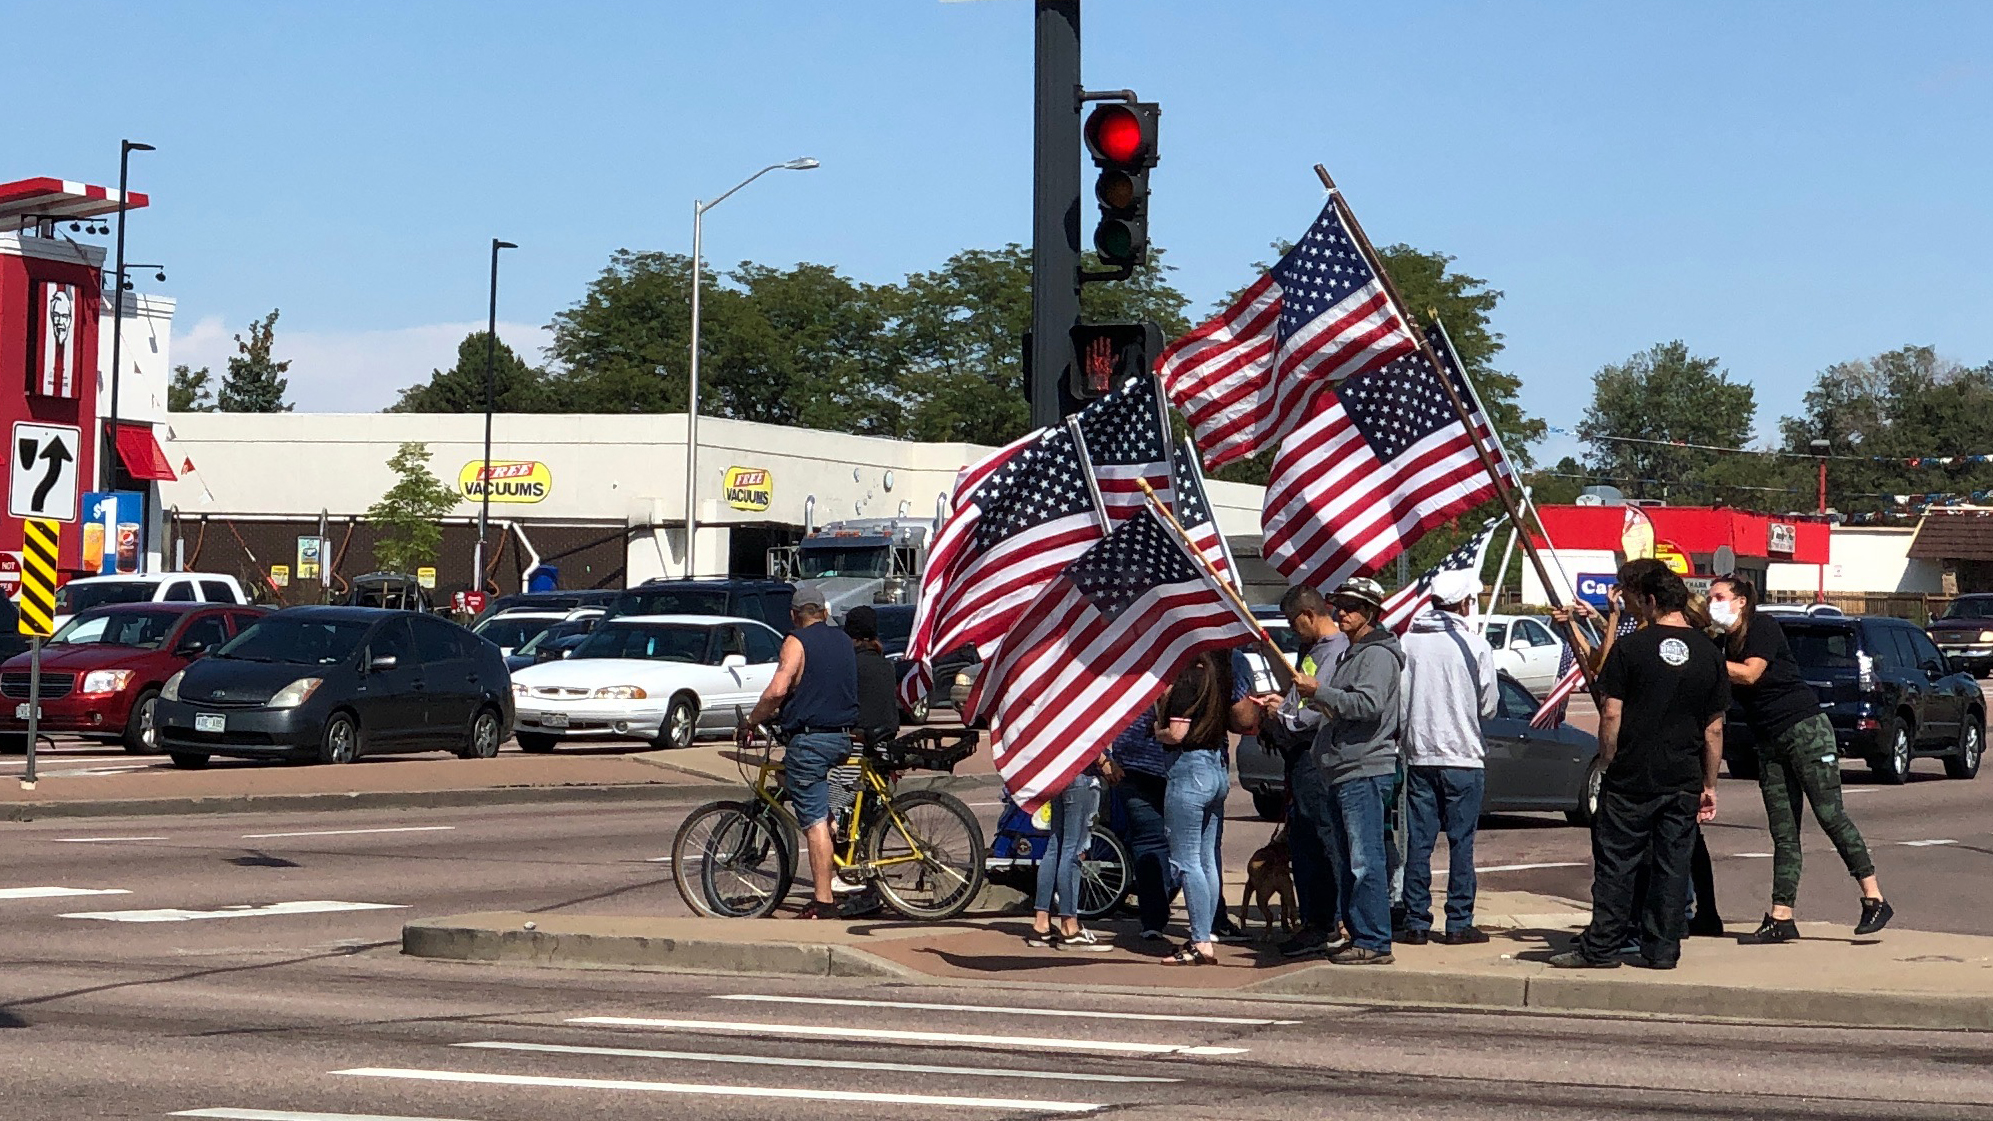 A Colorado Springs family waves flags in honor of 9/11 attack victims at the intersection of Academy Boulevard and Galley Road in Colorado Springs on September 11, 2020. / Mike Duran - FOX21 News